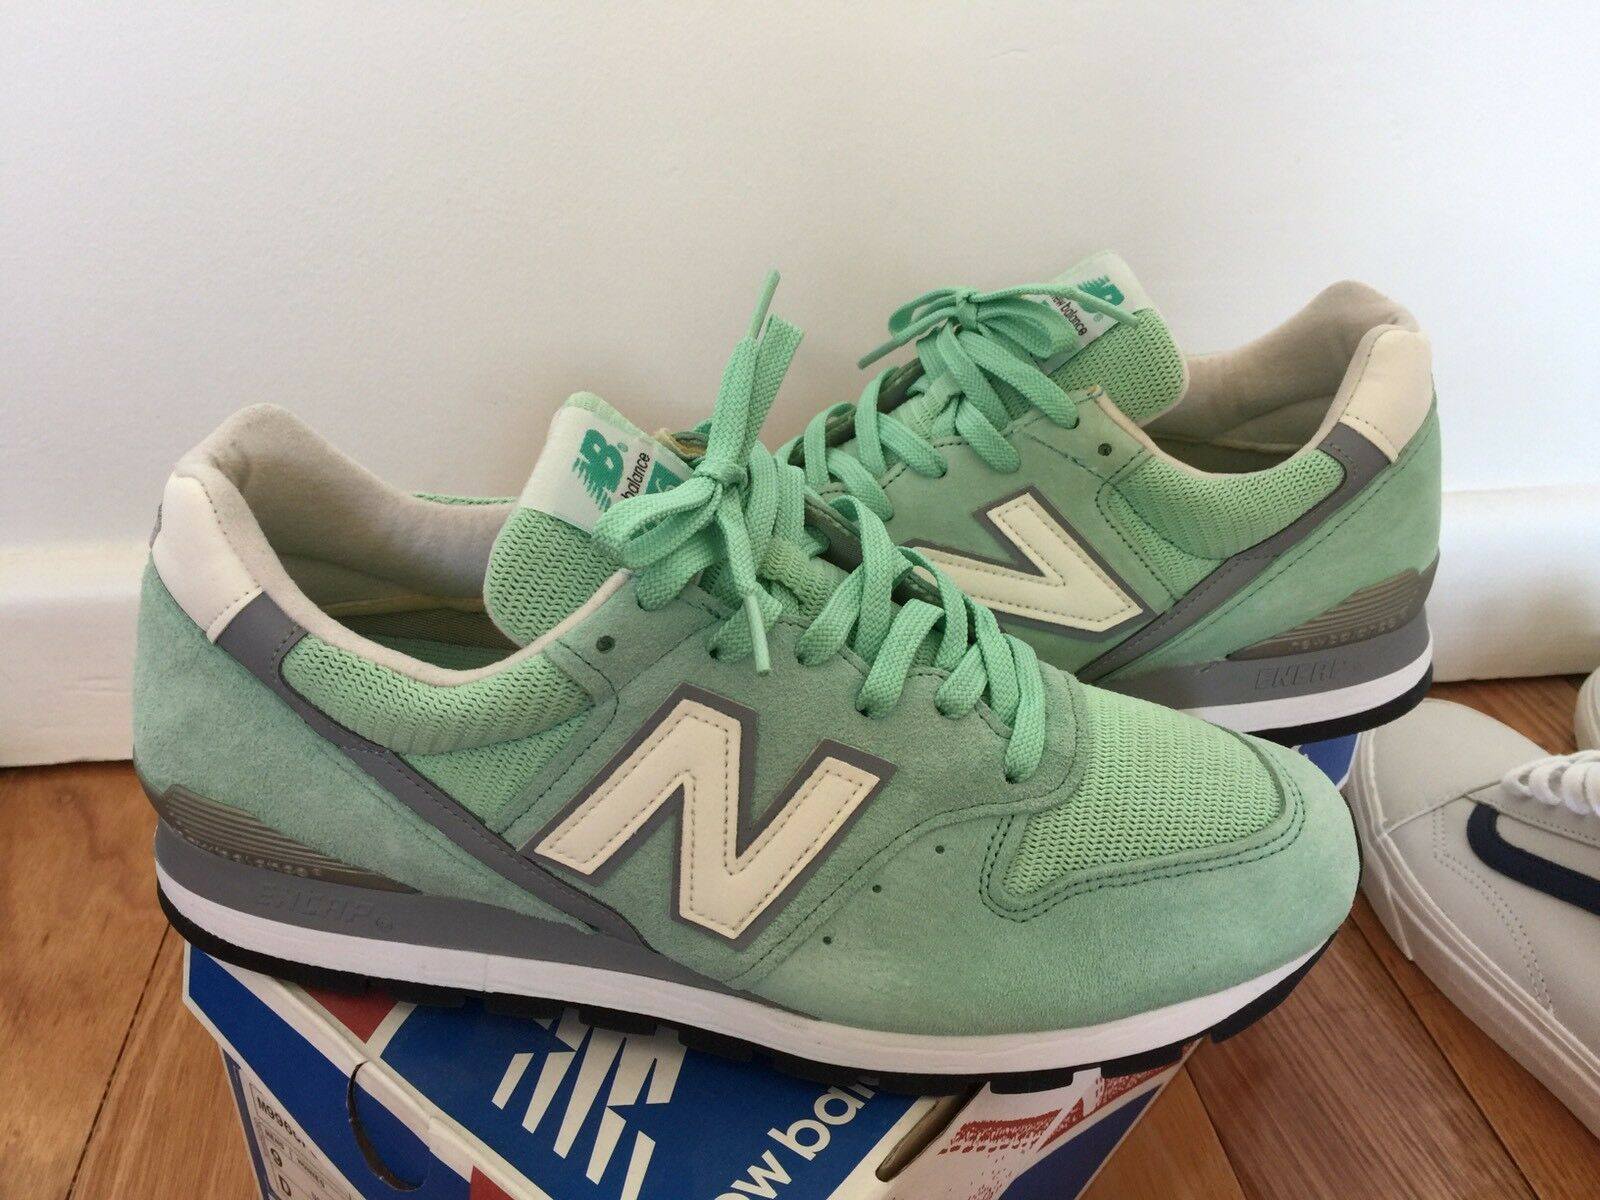 New Balance 996 Made In USA 9 Green Teal White Grey 998 1500 1400 1600 1300